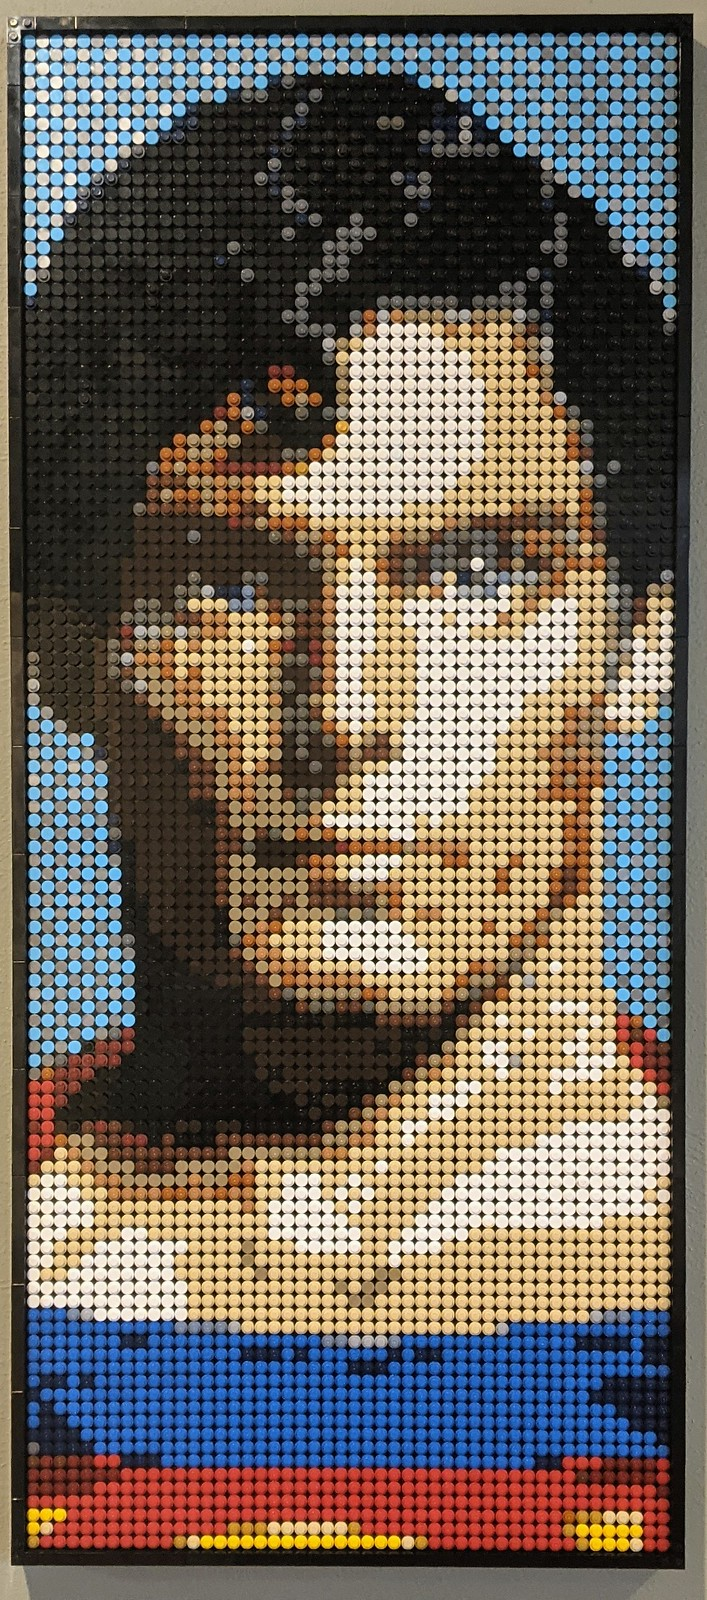 Christopher Reeve as Superman - LEGO Art Mosaic Style